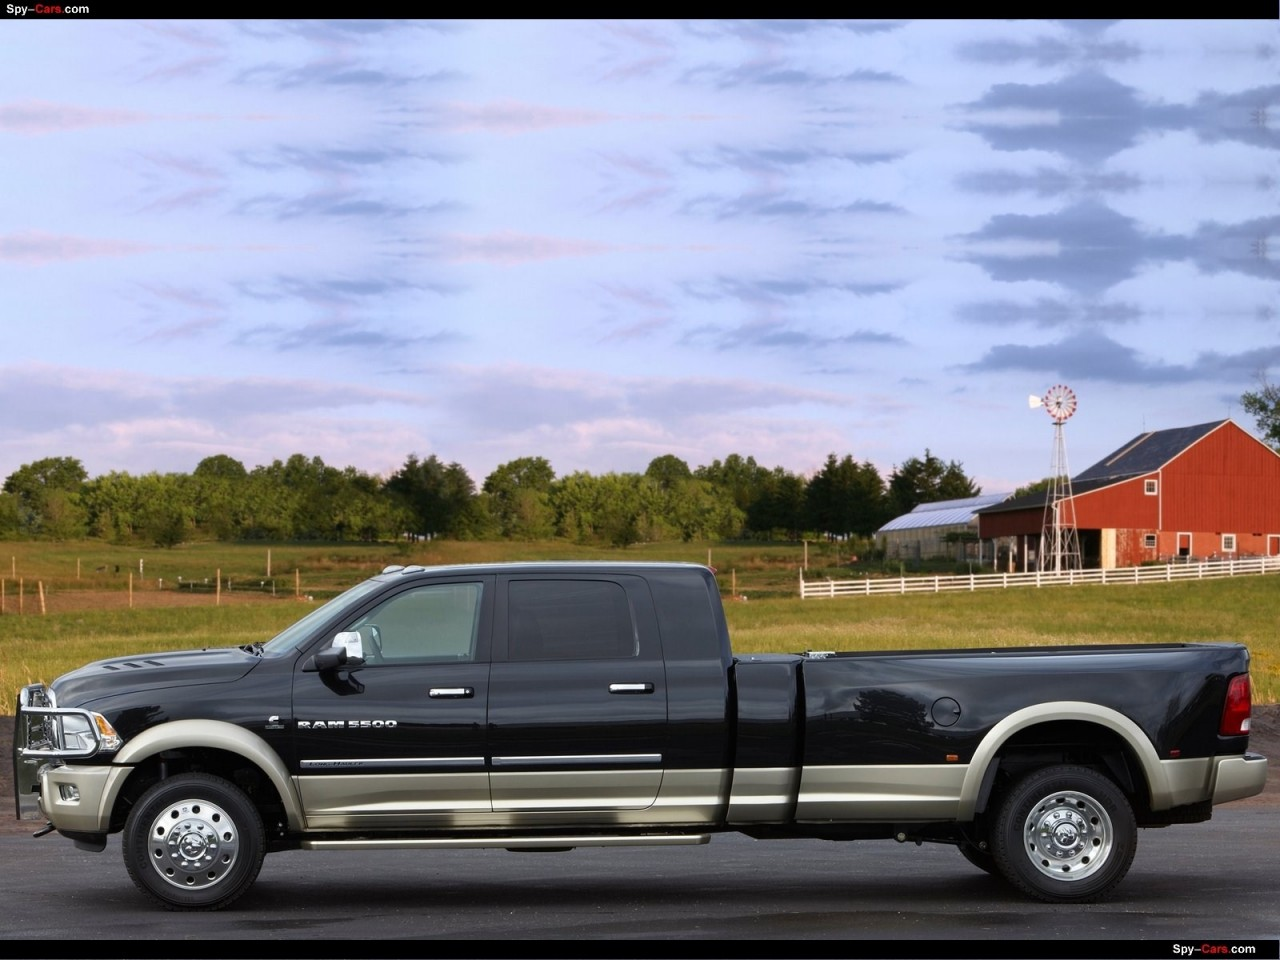 2011 Dodge Ram Long-Hauler Concept